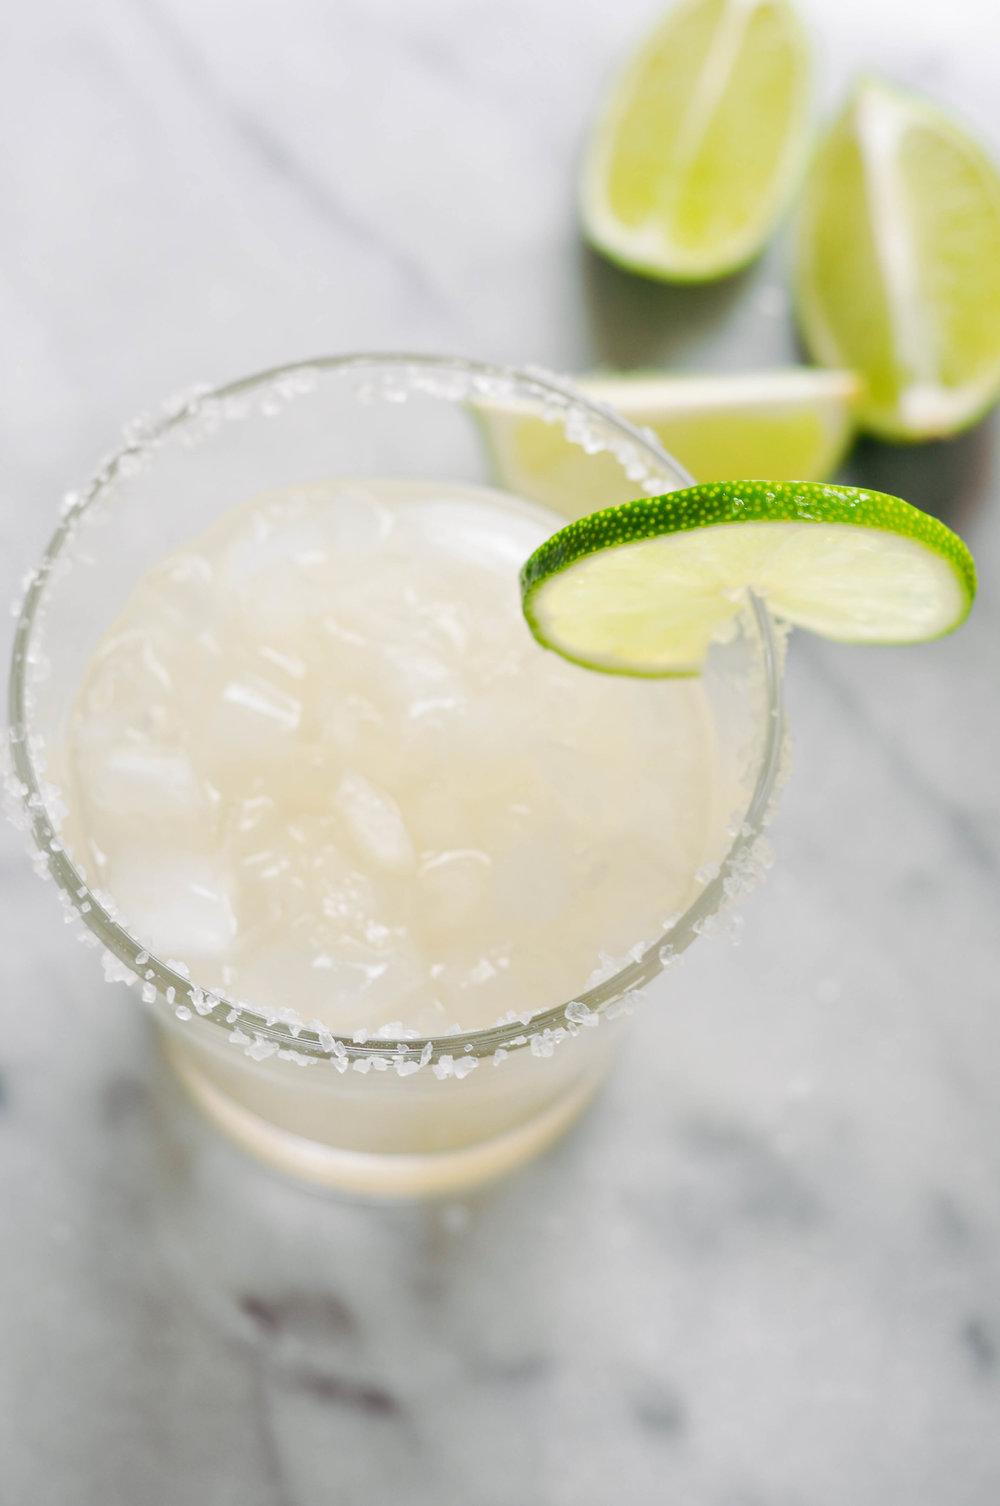 My absolute favorite margarita recipe! This ginger margarita is delicious and kicky! It's a perfect happy hour drink. | This Healthy Table